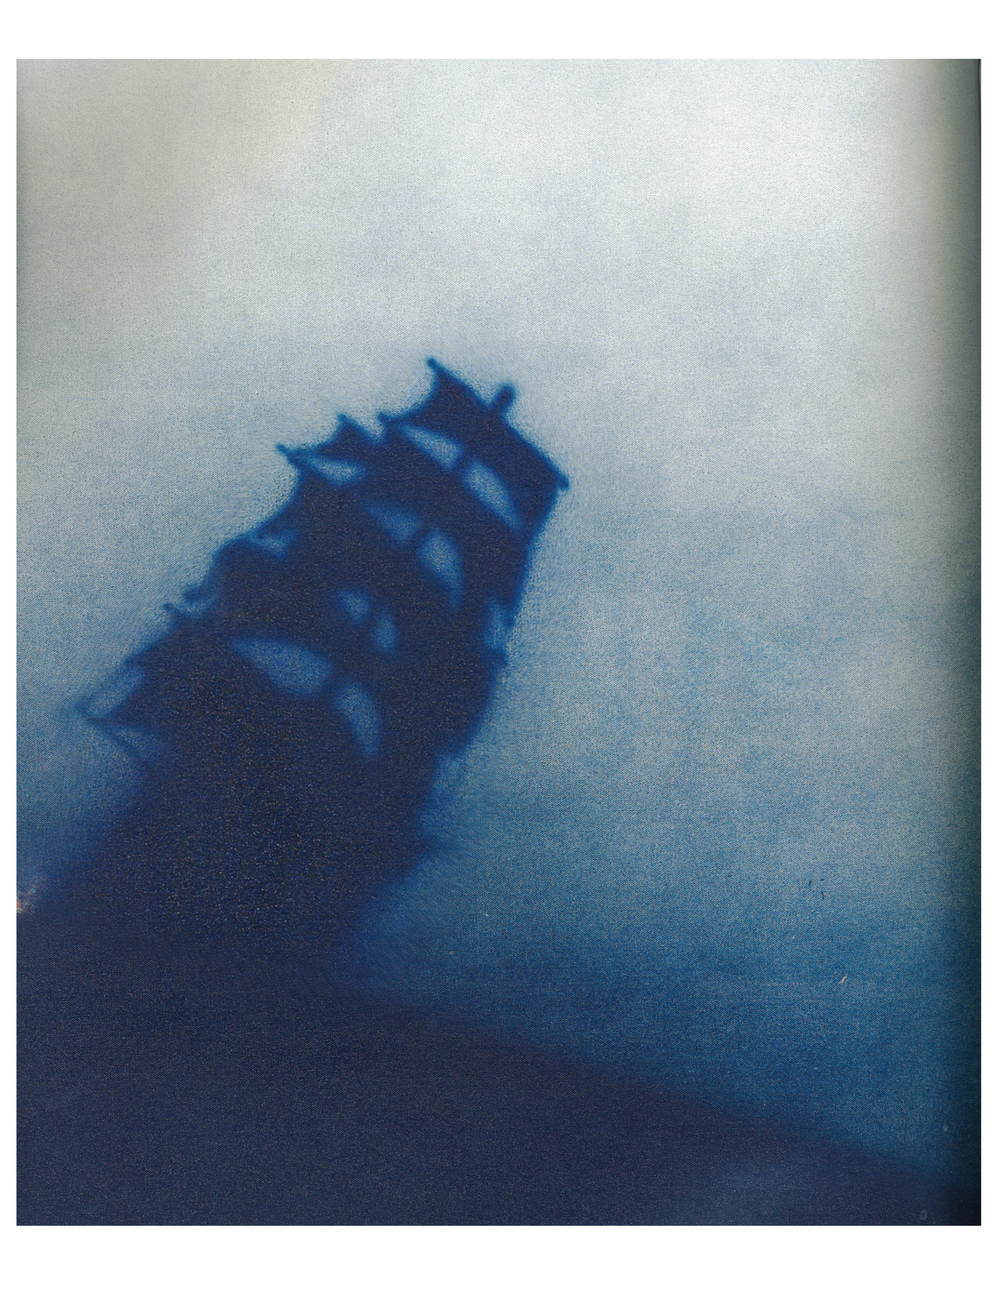 Ed Ruscha,  Ship Talk , 1988    acrylic on canvas    Image: Phillips Contemporary Art, London Evening Sale print catalog, June 29, 2015.